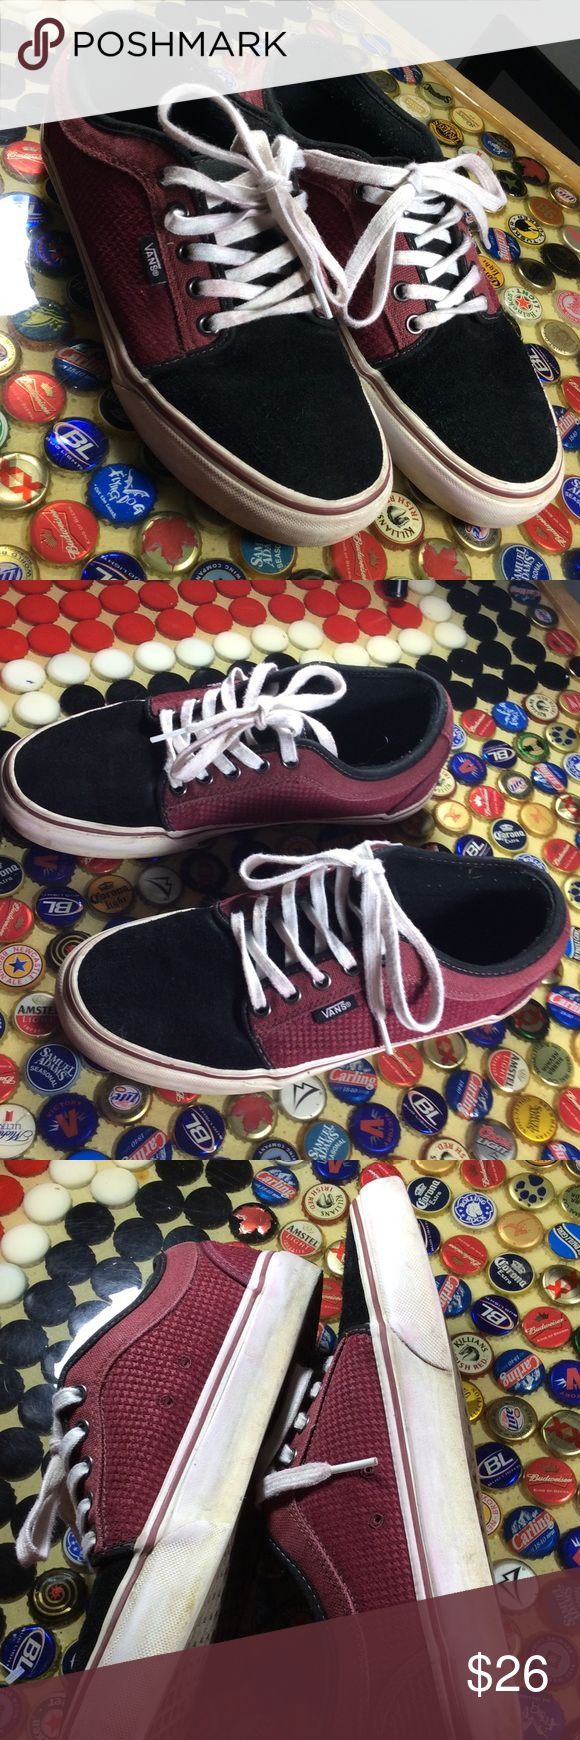 Vans Mens leather shoes size 7 Vans  Men's leather upper. Has minor wear for Preowned, but in very good condition,. Men's size 7. Vans Shoes Athletic Shoes